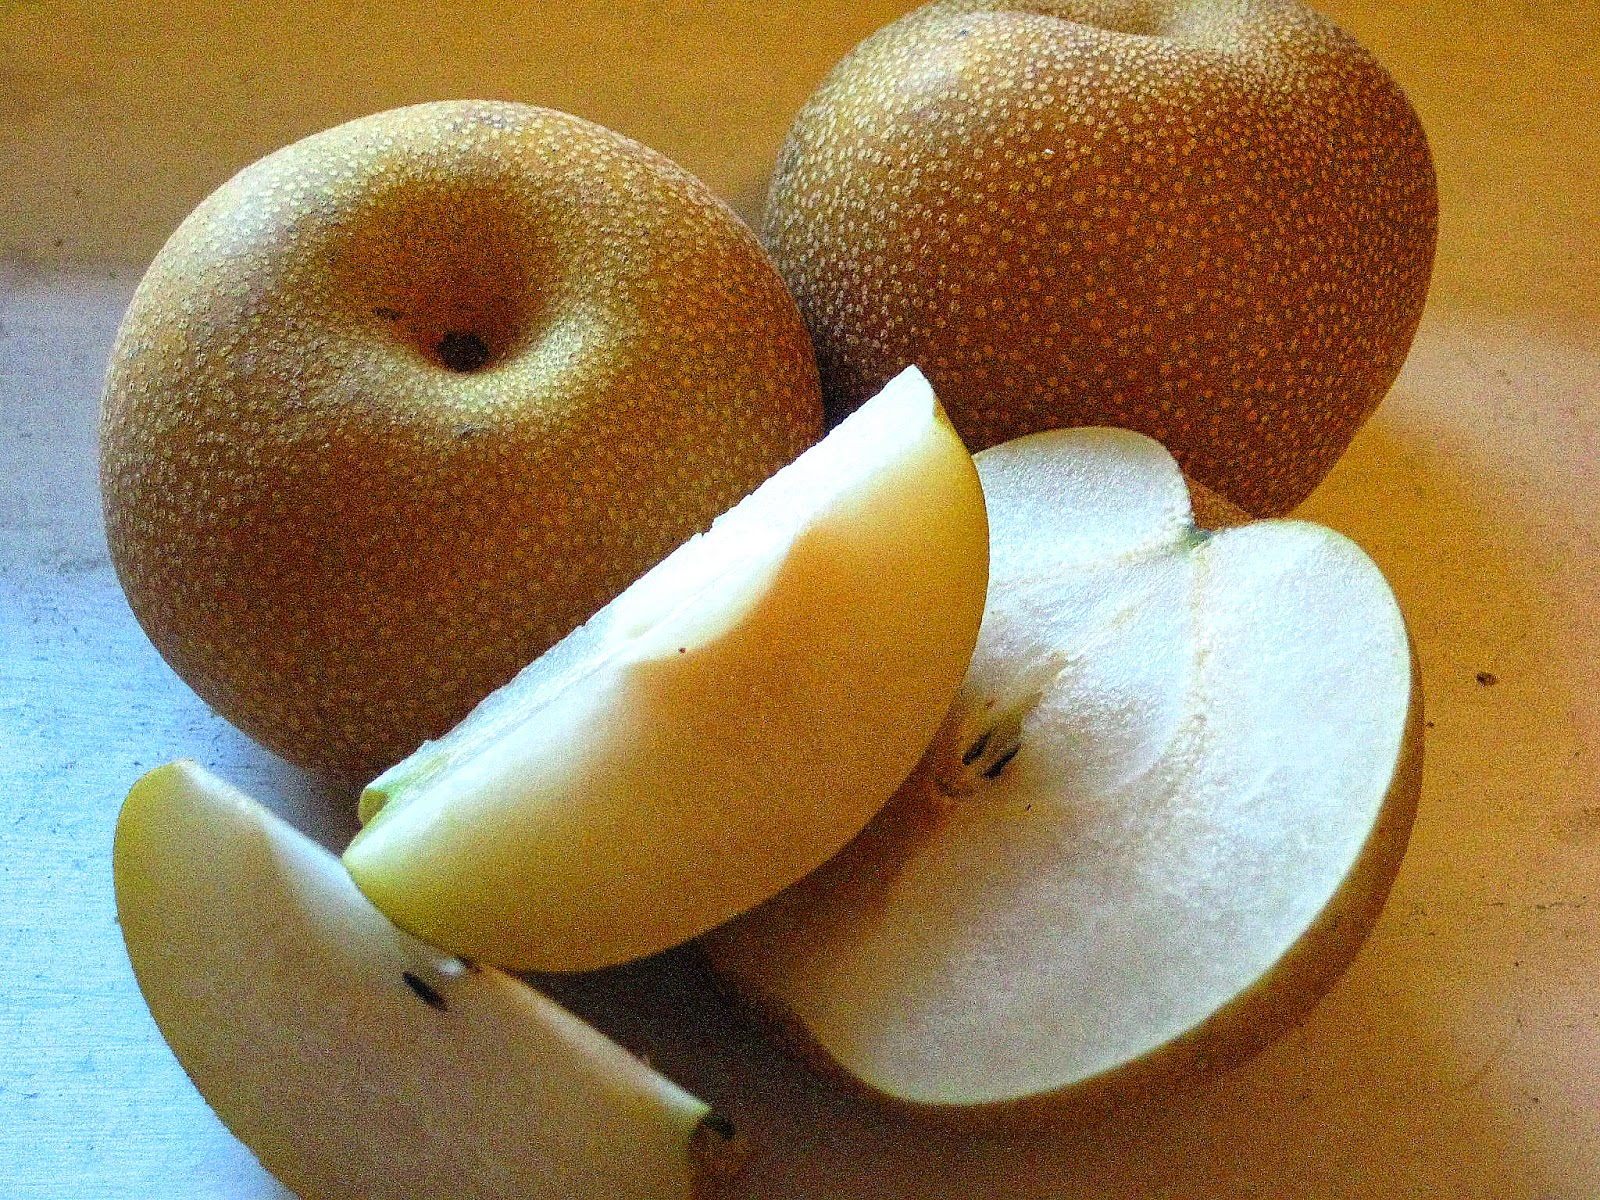 Steamed pear with rock sugar home remedy for cough sore throat when i did my grocery shopping few days ago i saw a big sales for asian pears the mountain high pears remind me of a tasty home remedy for cough and sore forumfinder Images